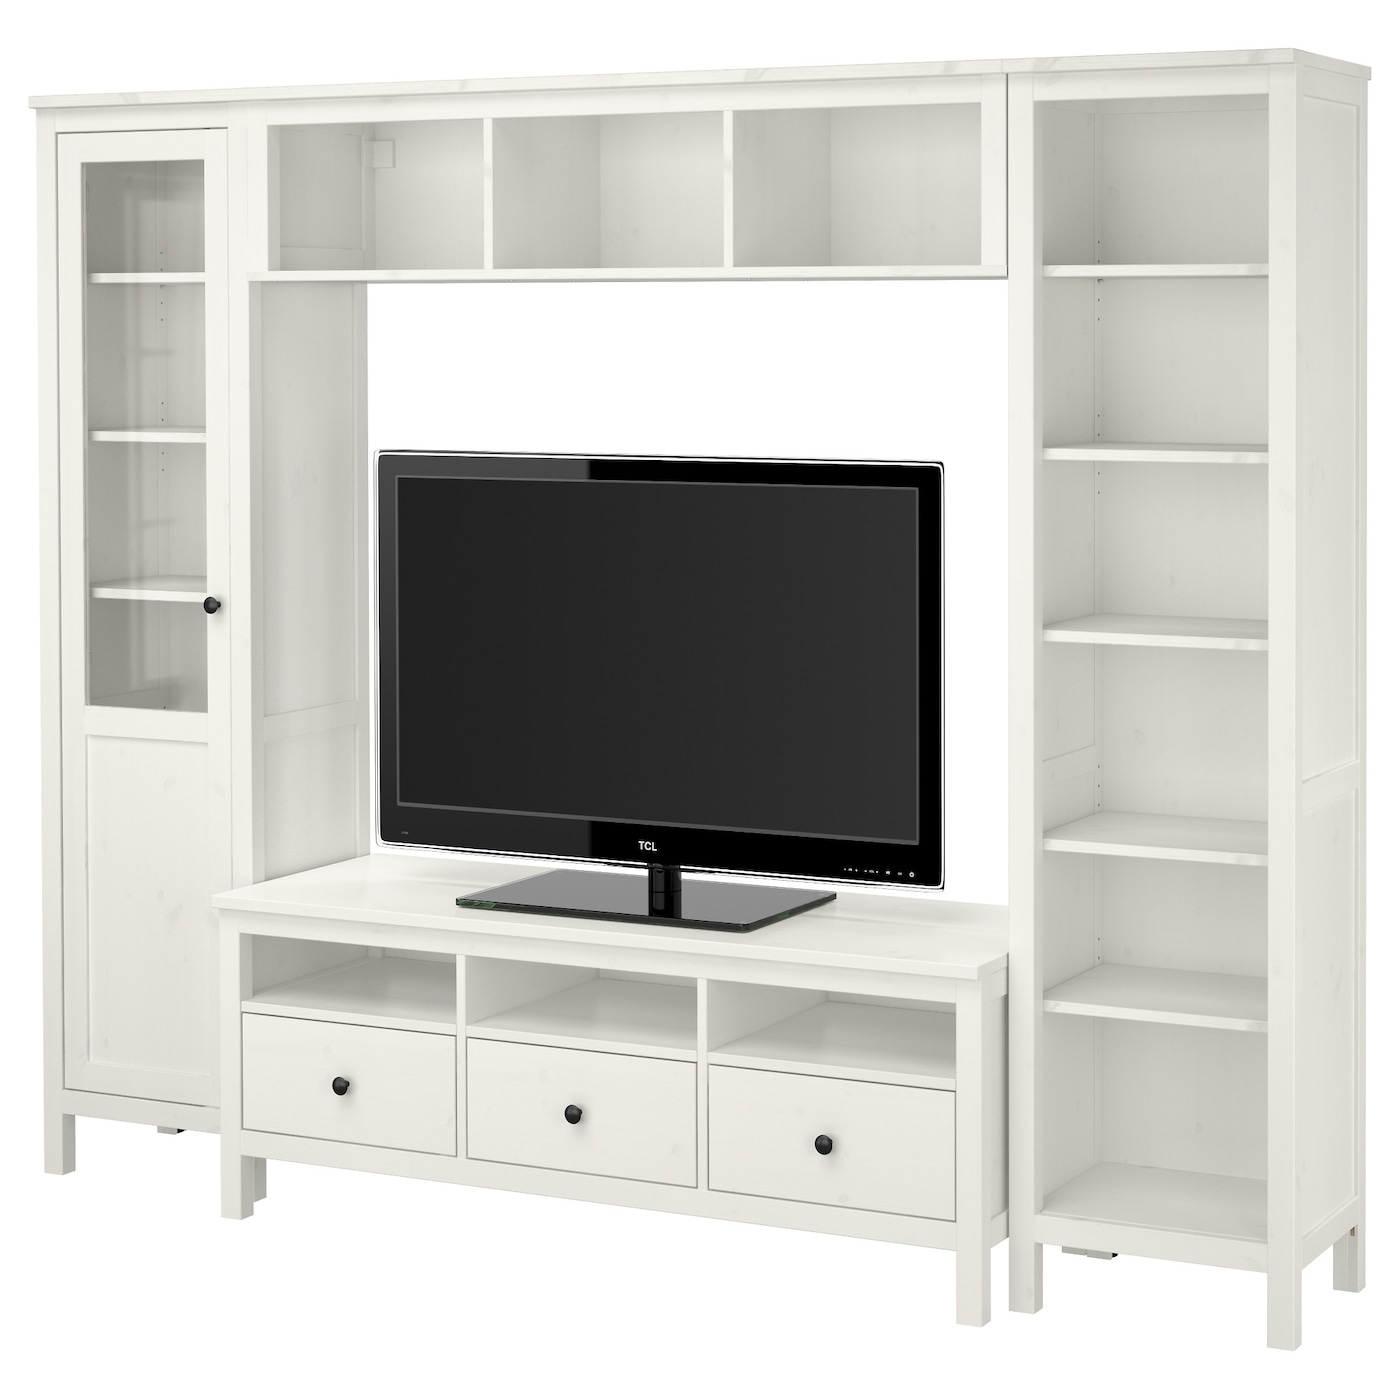 hemnes tv storage combination white stain 246x197 cm ikea. Black Bedroom Furniture Sets. Home Design Ideas